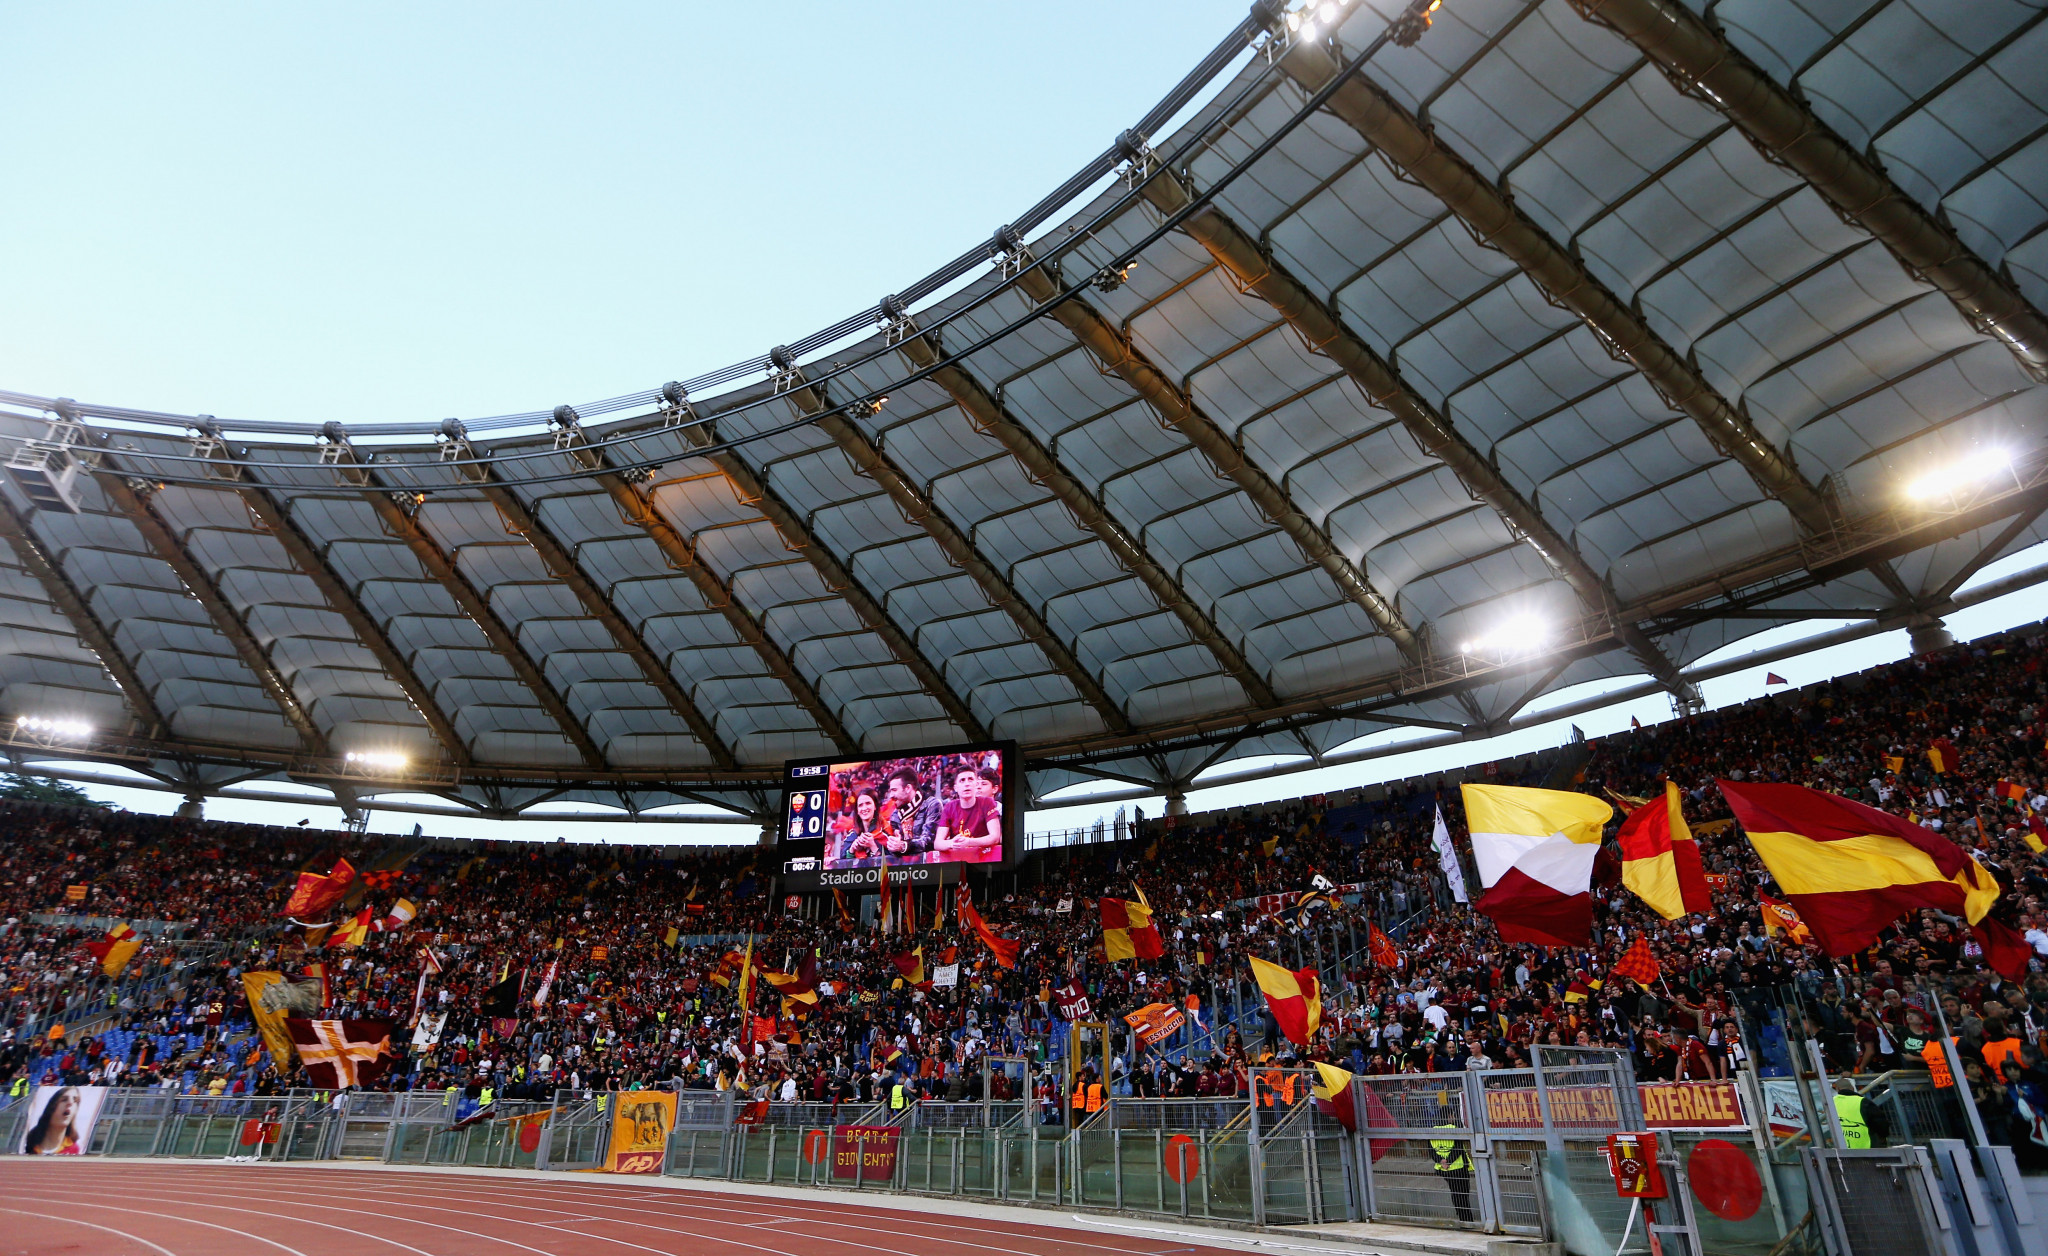 Roma have played their home matches at the Stadio Olimpico since 1953 ©Getty Images